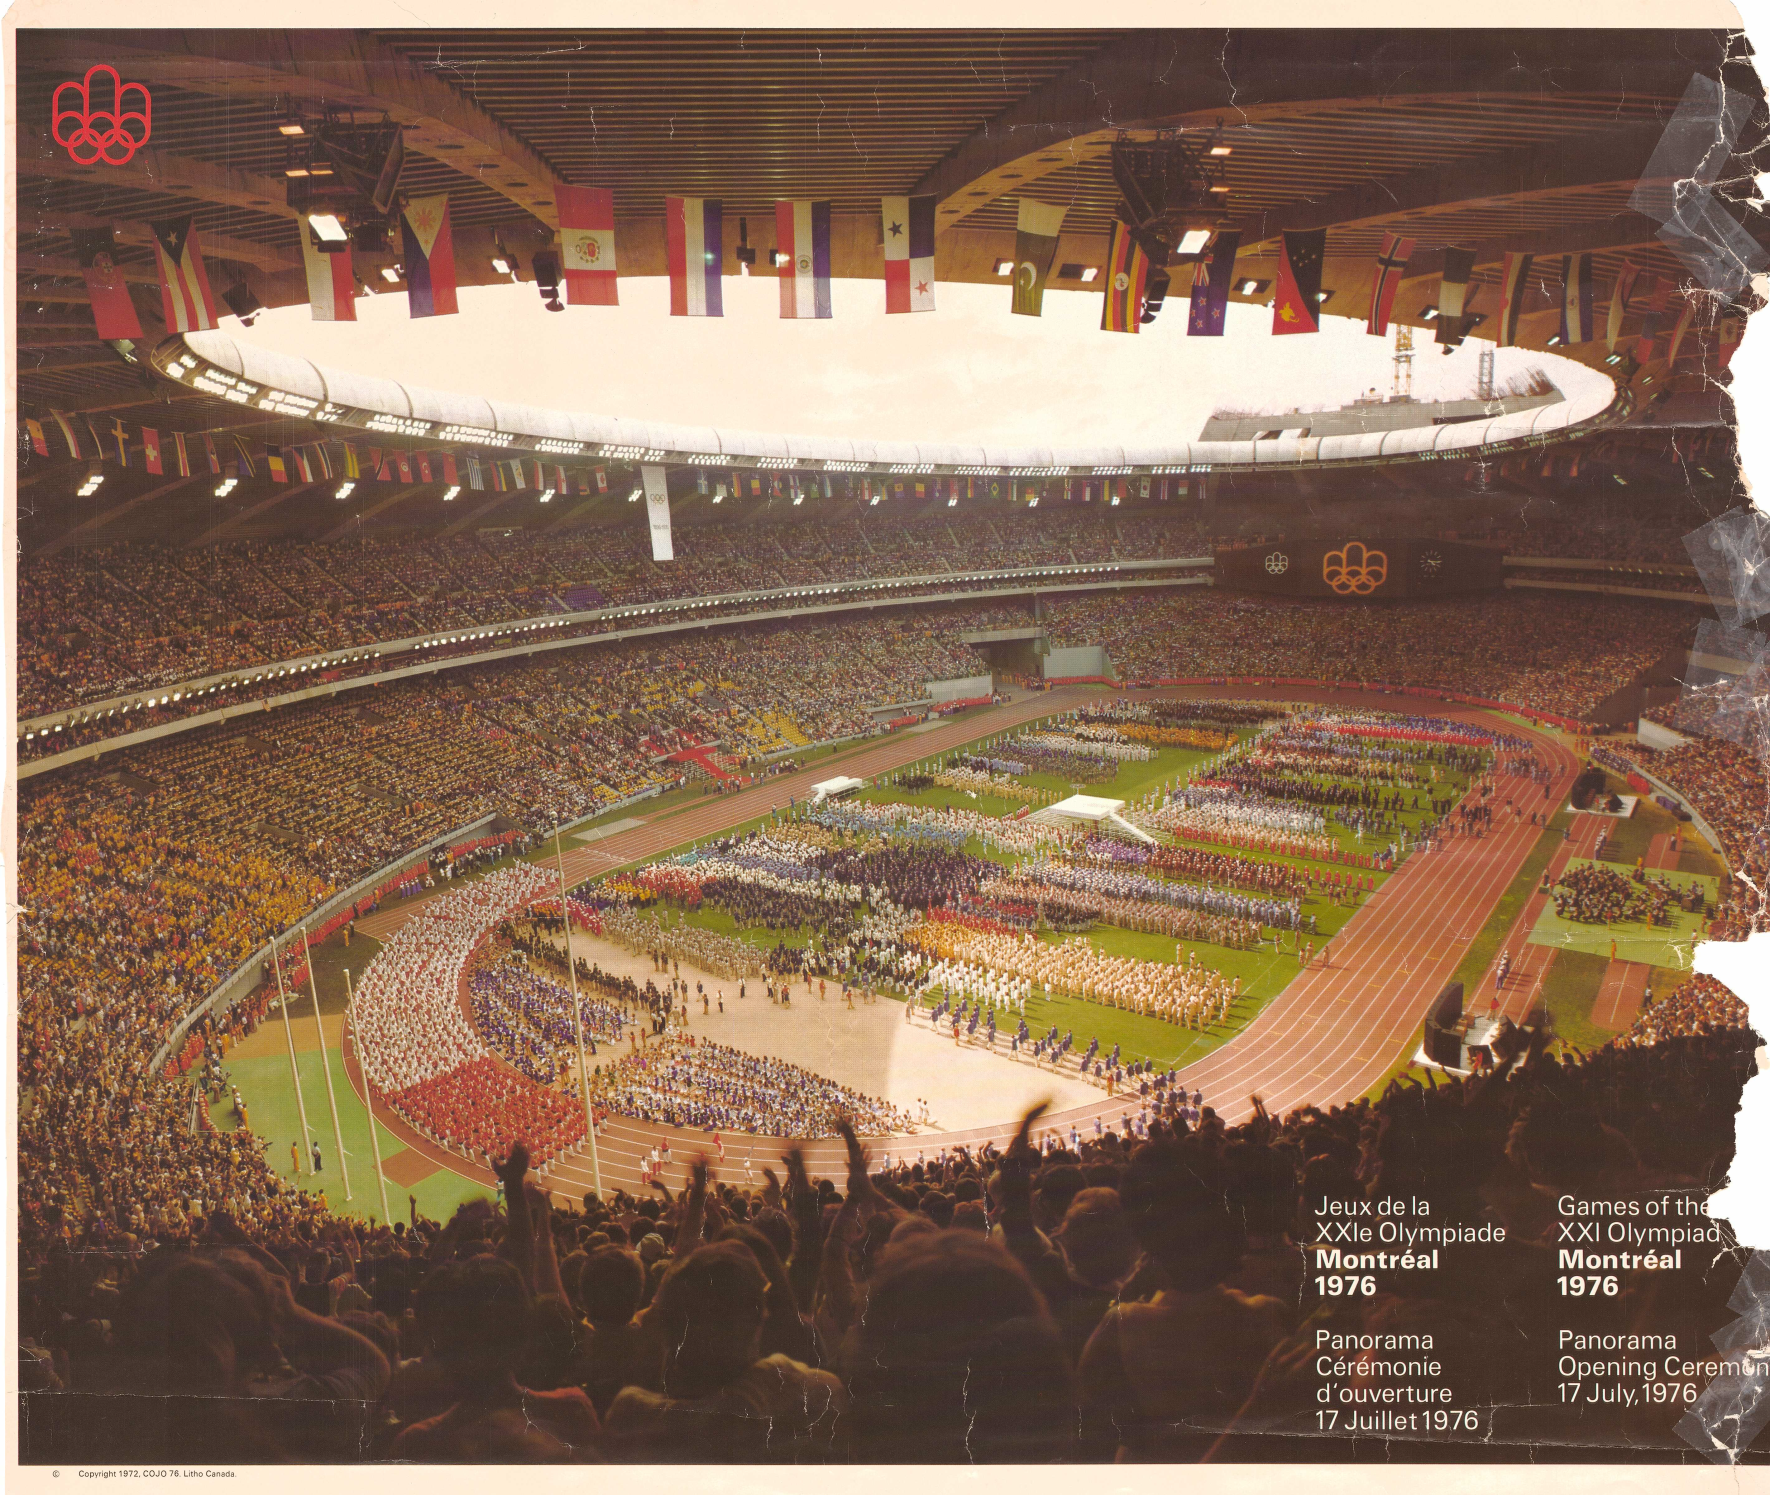 This old poster gives a great overview of the Opening Ceremony.